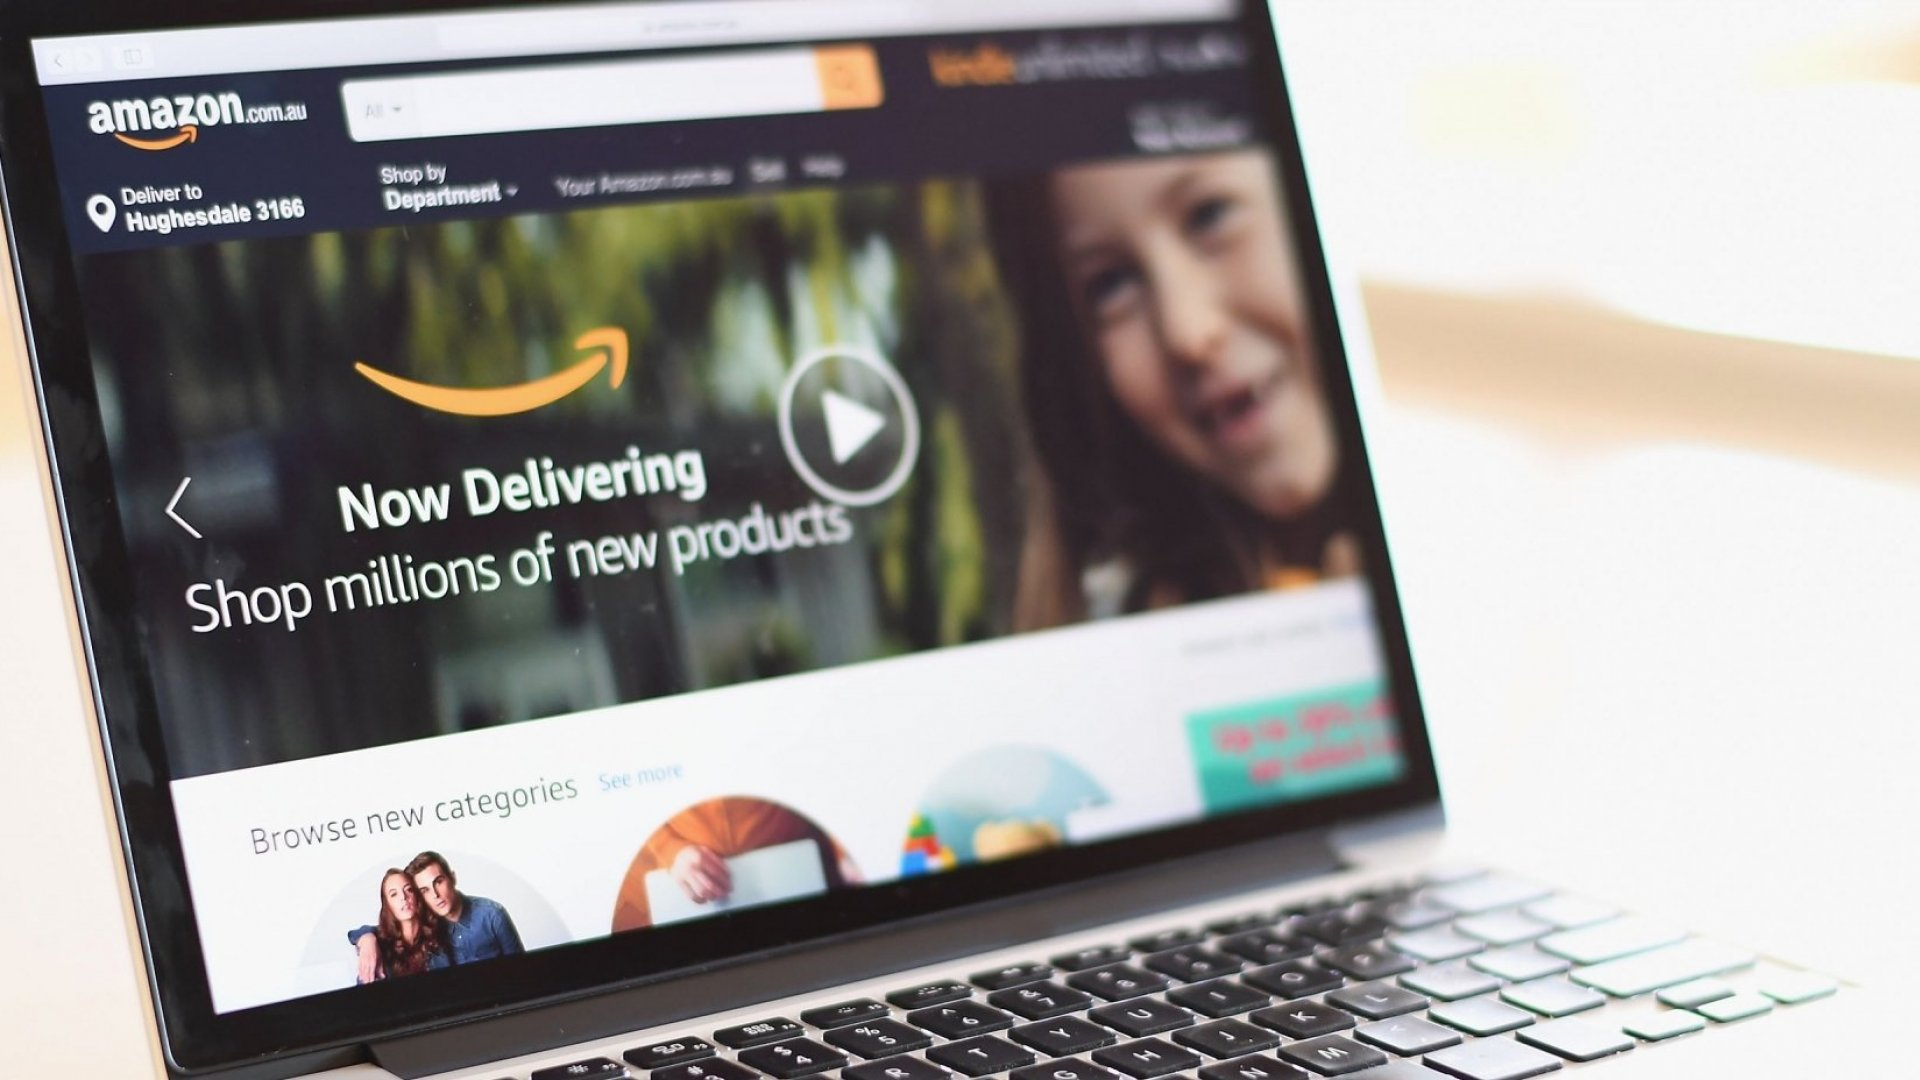 Amazon Has a Very Real Coronavirus Problem. Its Response Is a Lesson for Every Business